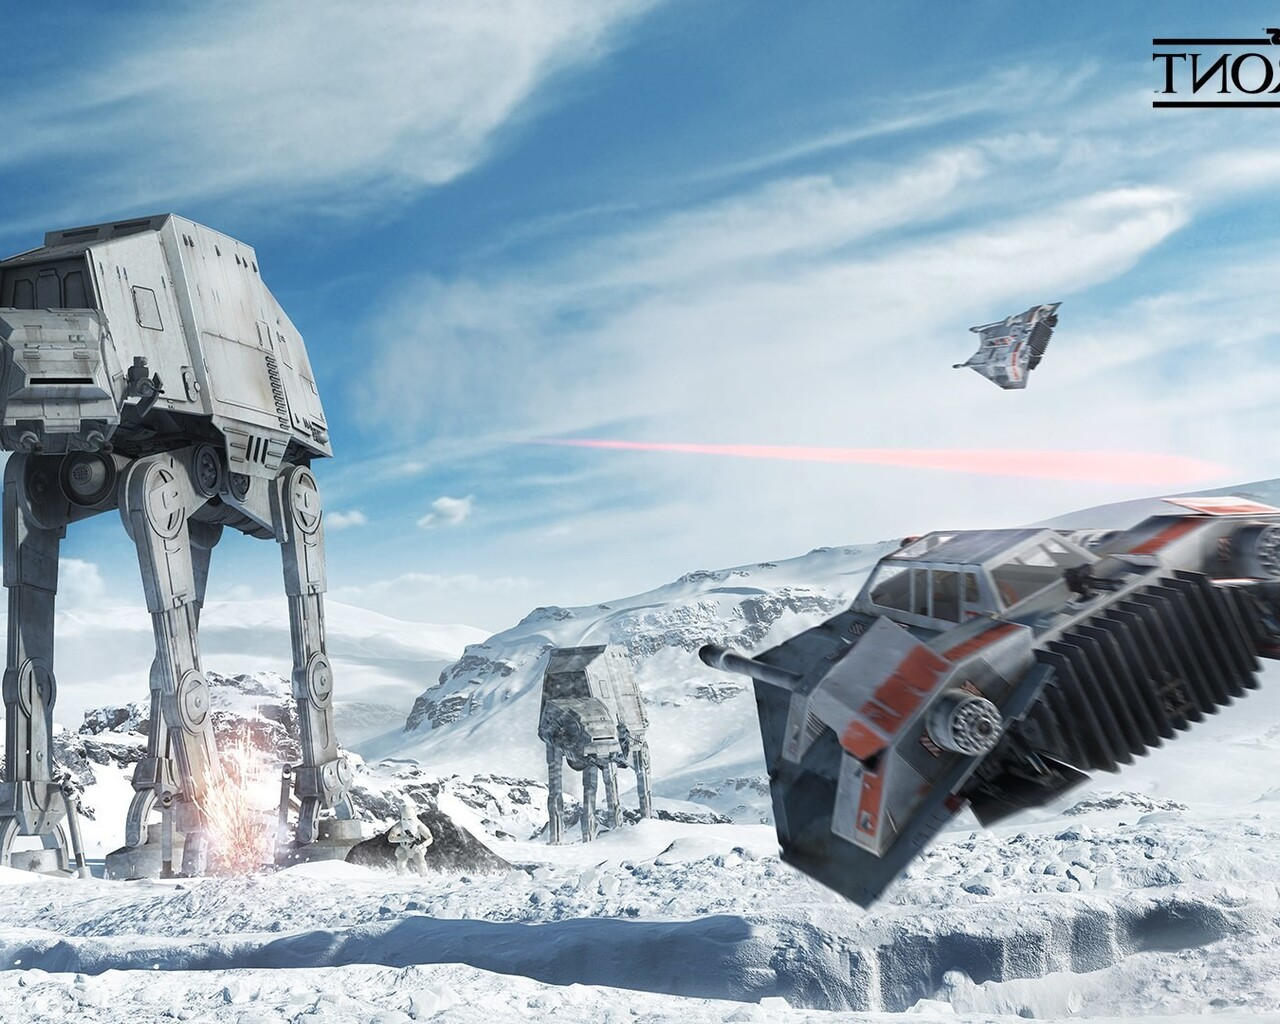 1280x1024 Star Wars Battlefront Art 1280x1024 Resolution Hd 4k